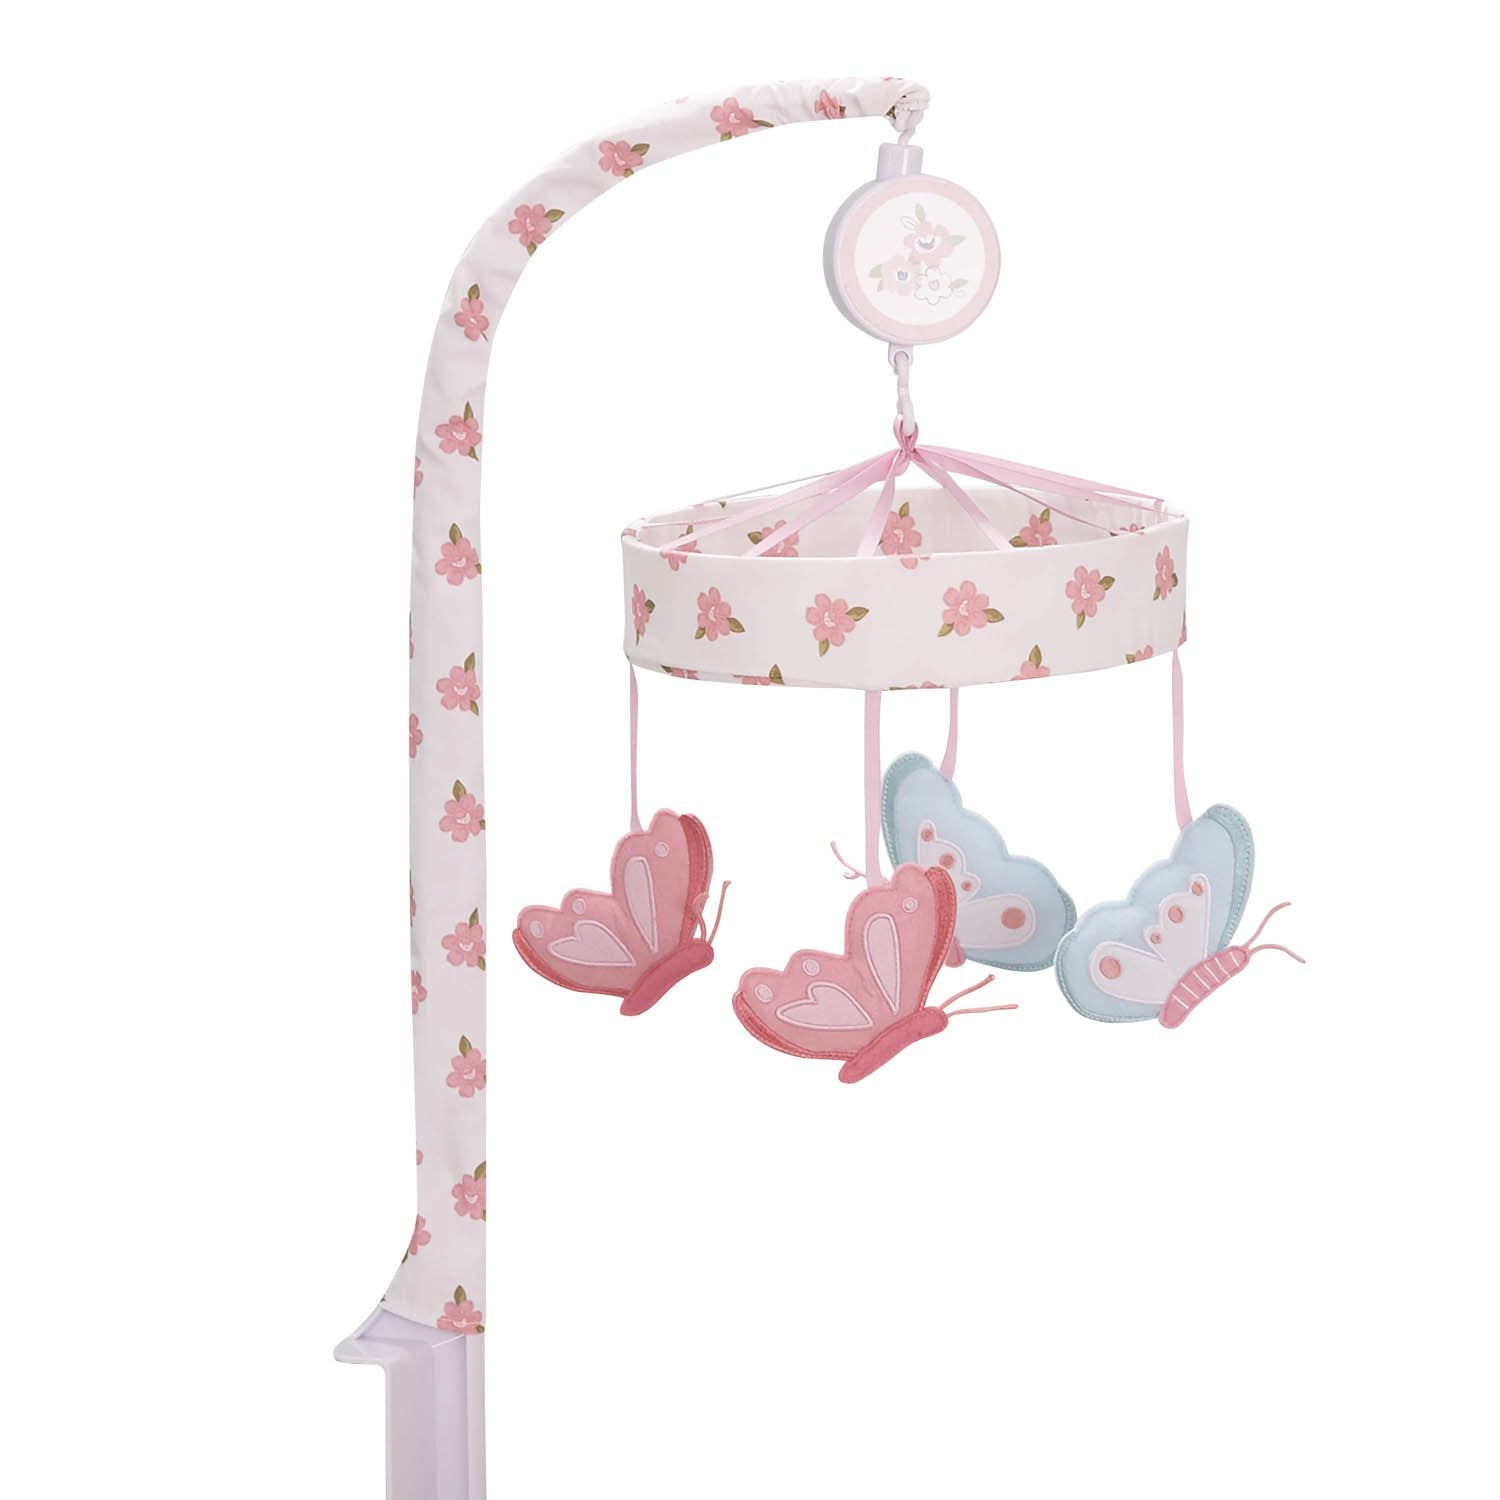 Just Born One World Collection Musical Mobile - Blossom-Gerber Childrenswear